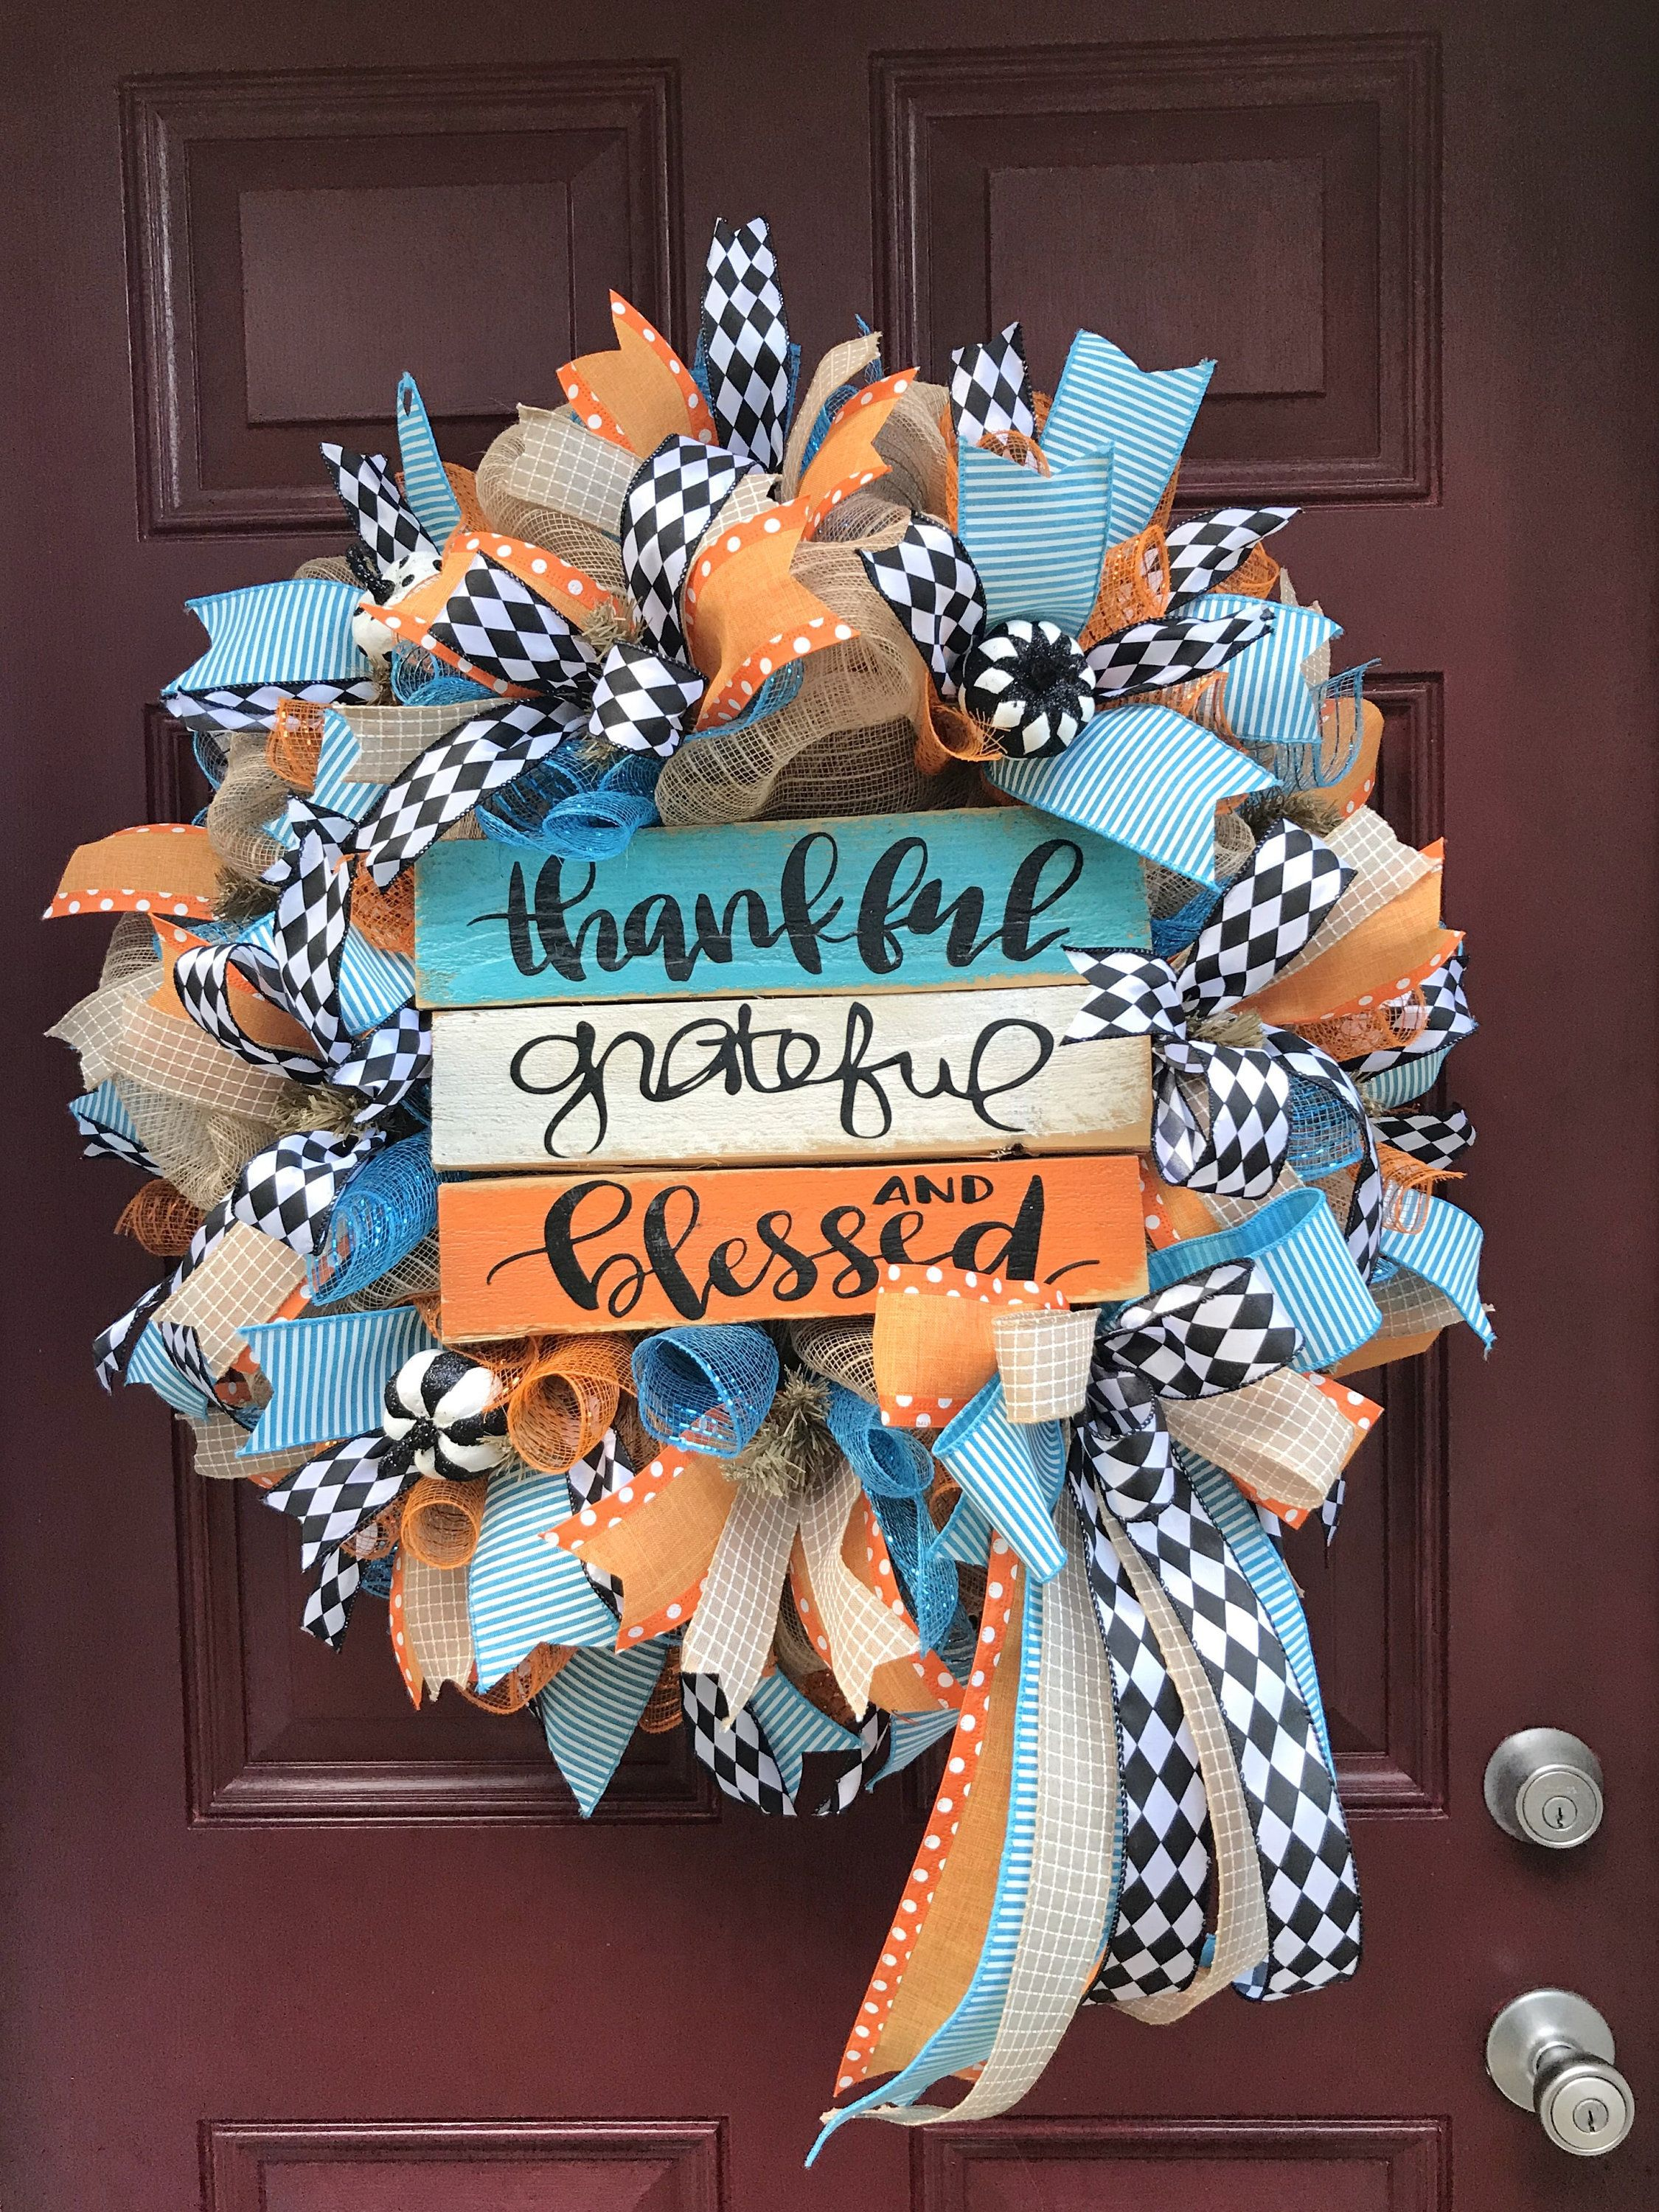 Photo of Fall Wreath for Front Door, Autumn Decoration, Front Porch Decor, Thanksgiving Wreath, Rustic Thankful Wreath, Thankful Grateful Blessed